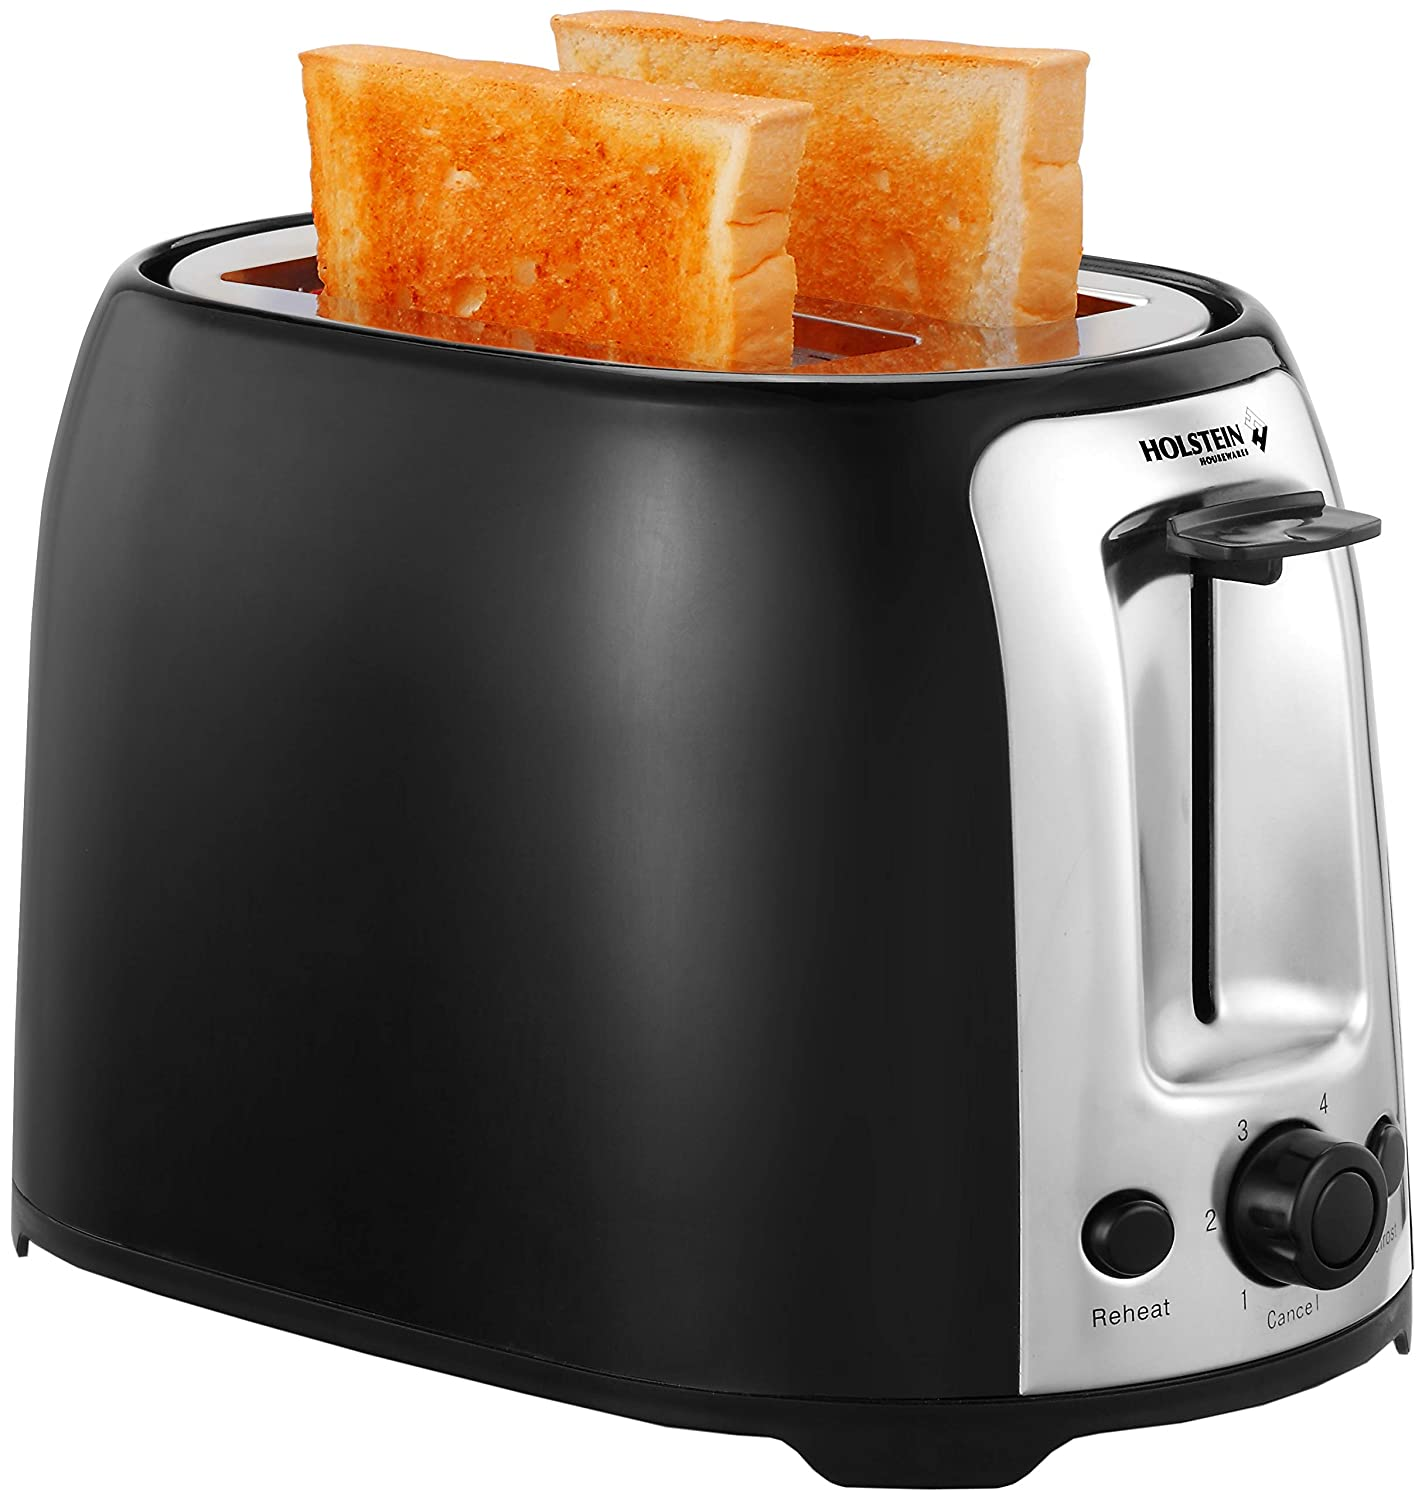 Holstein Housewares HH-09175001B 2-Slice Toaster with 7 Browning Levels, Black 819pSQO0cdL